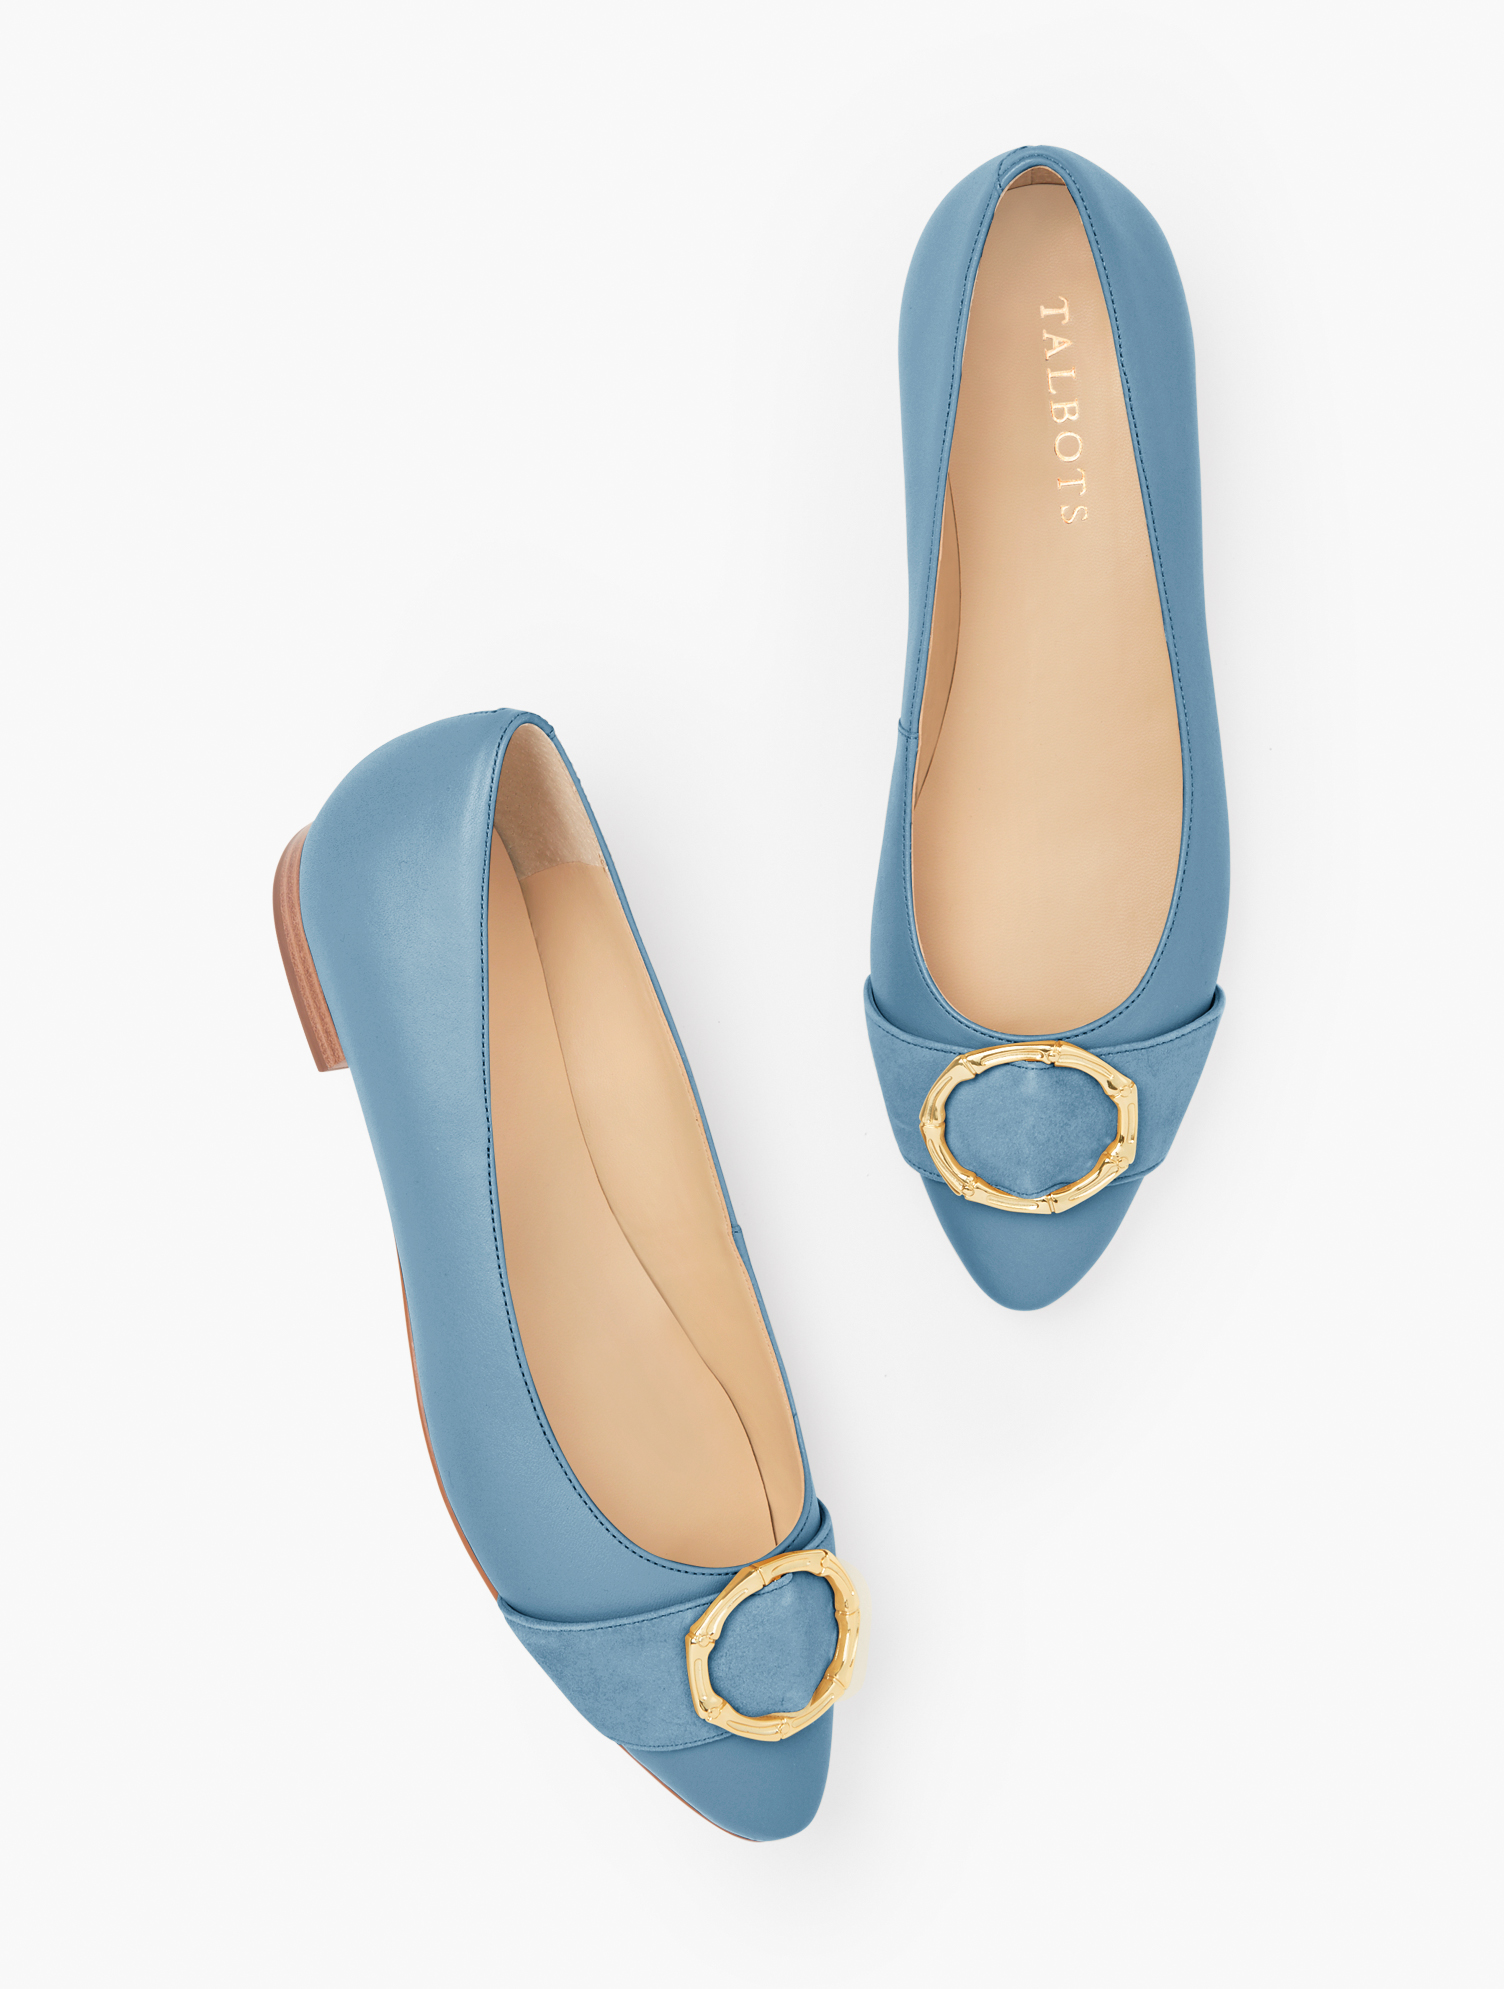 Retro Vintage Flats and Low Heel Shoes Edison Bamboo Ring Nappa Flats - Blue Blossom - 11M Talbots $129.00 AT vintagedancer.com